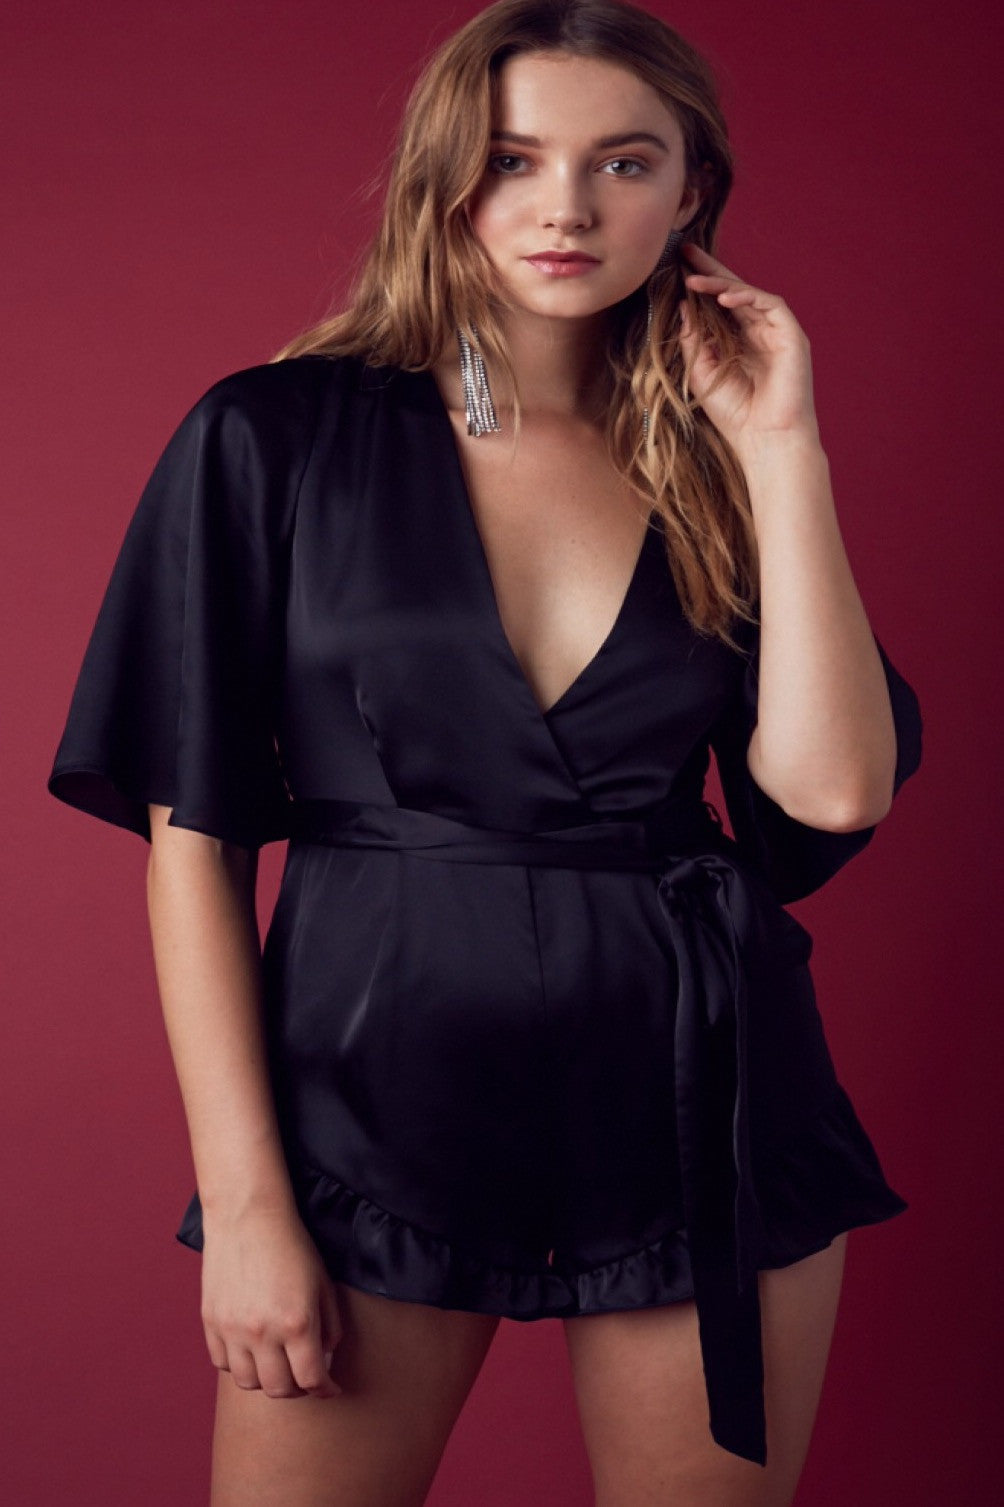 Ainsley Satin Romper-Black - Hapa Clothing - 1